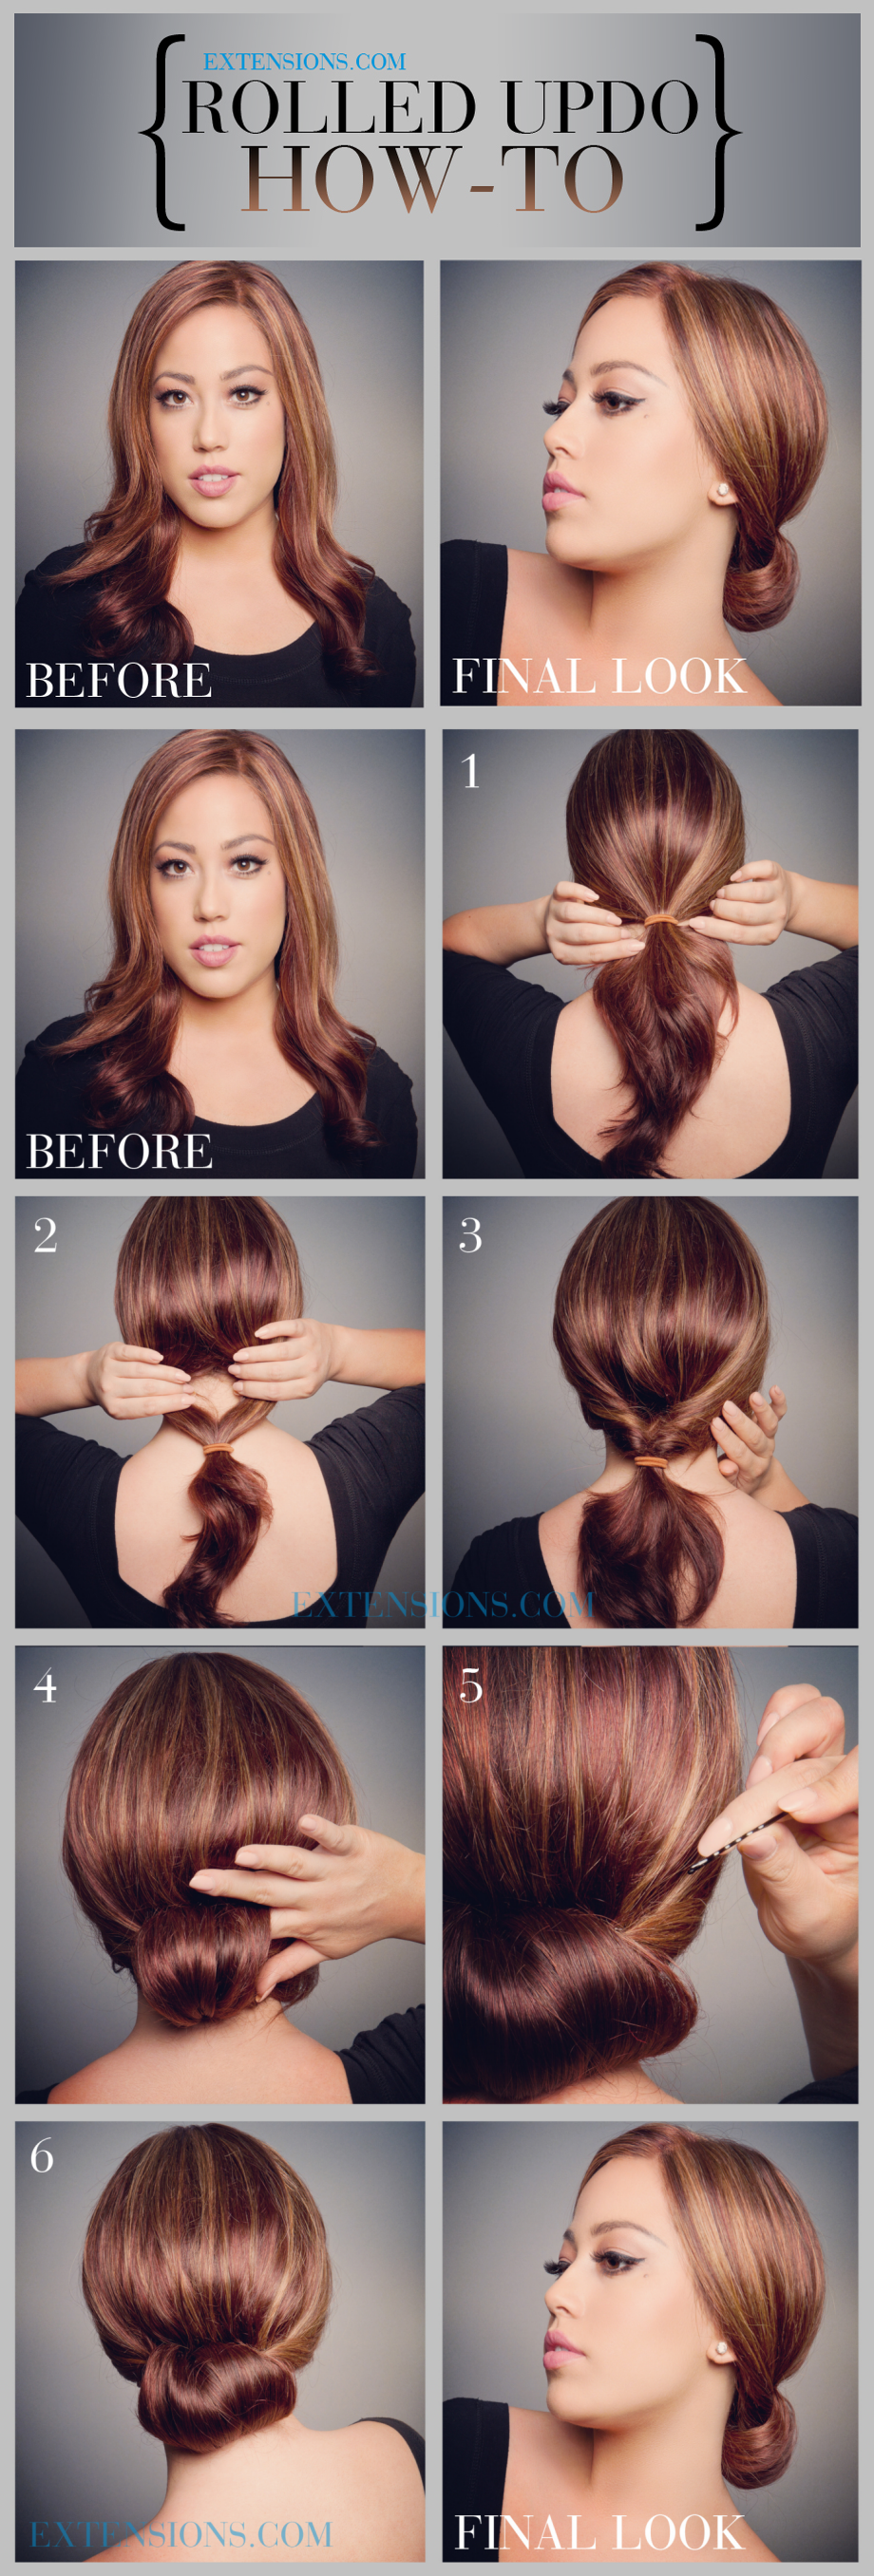 trendy low bun updo hairstyles tutorials easy cute easy updo